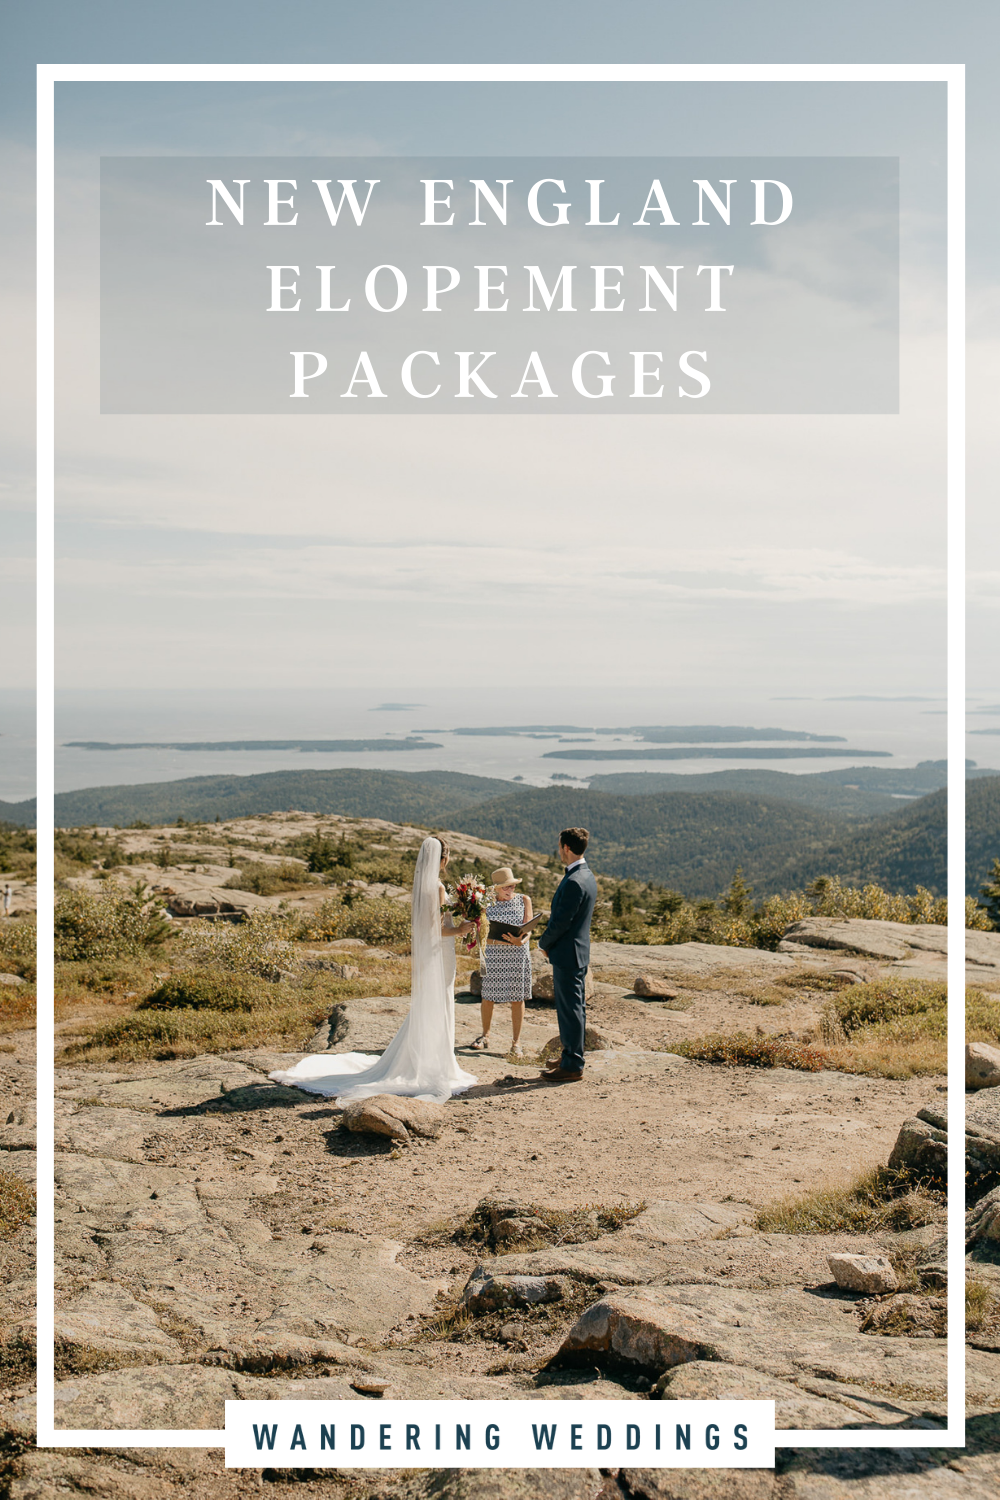 New England elopement package guide filled with elopement locations, vendors, and tips, photo of couple elopement ceremony in Acadia National Park